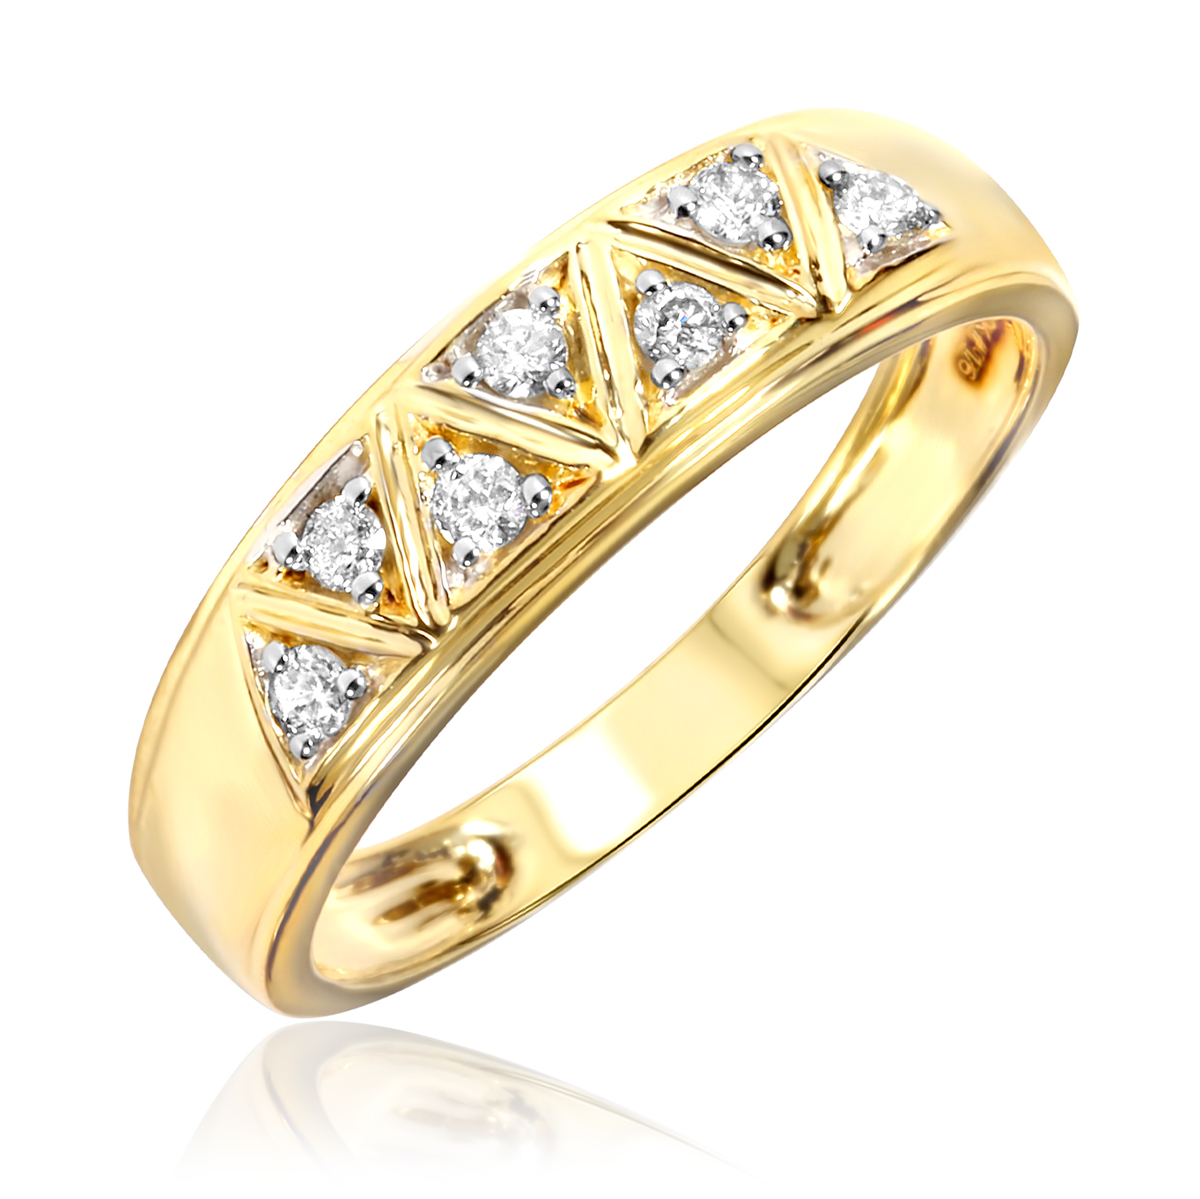 1 6 Carat T W Diamond Women s Wedding Ring 10K Yellow Gold